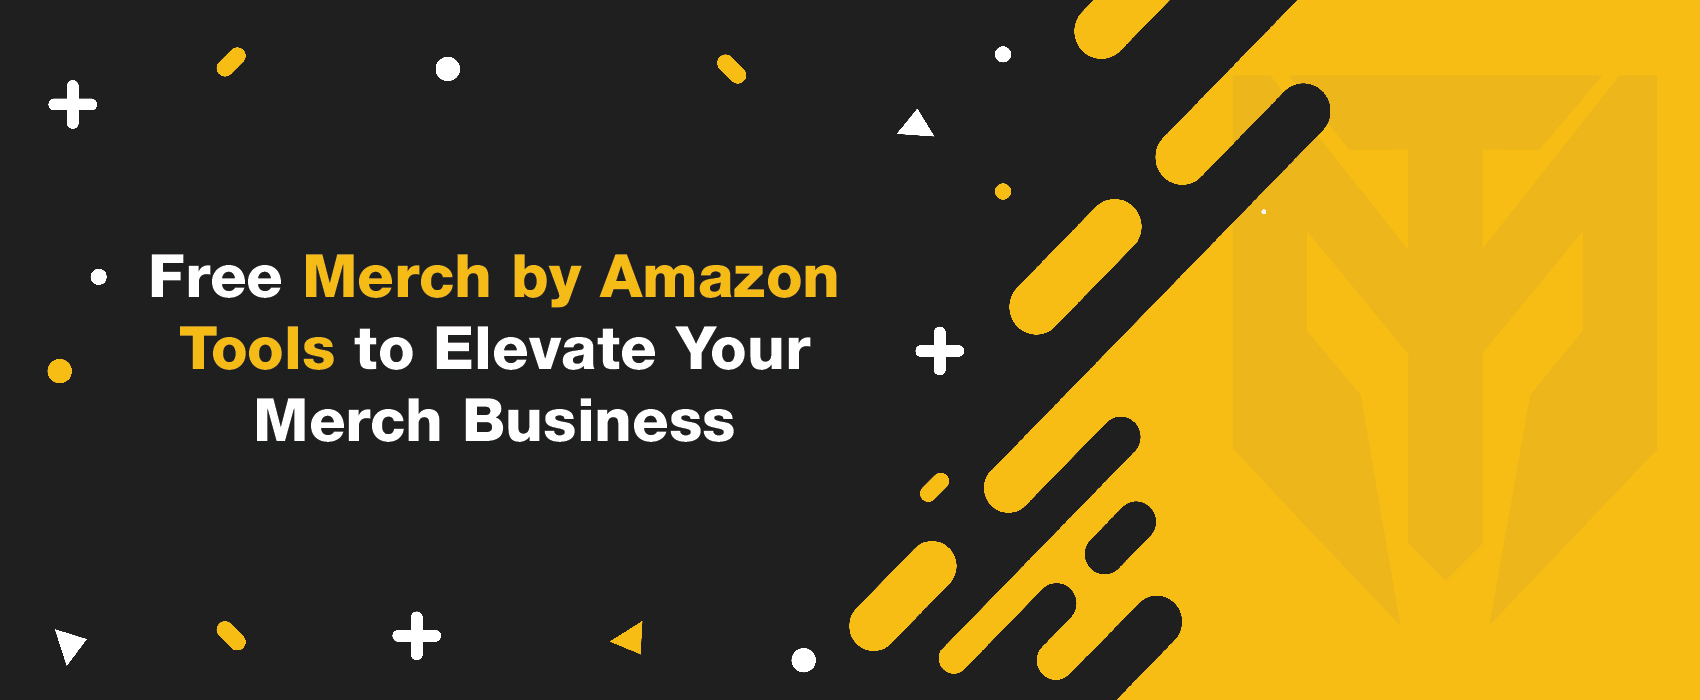 Free Merch by Amazon Tools to Elevate Your Merch Business